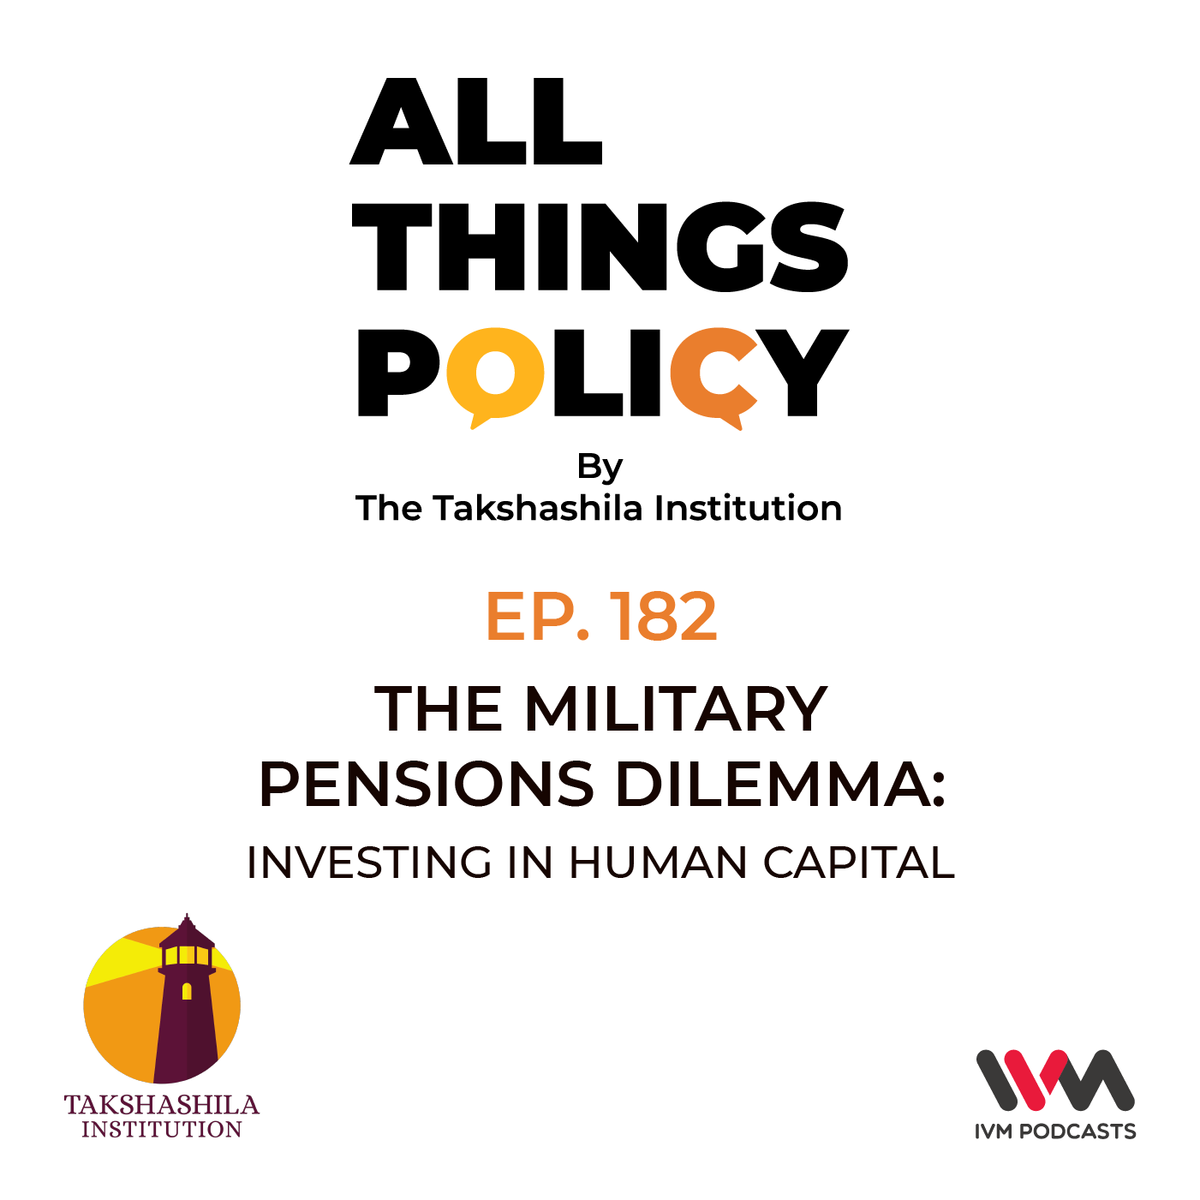 Ep. 182: The Military Pensions Dilemma: Investing in Human Capital